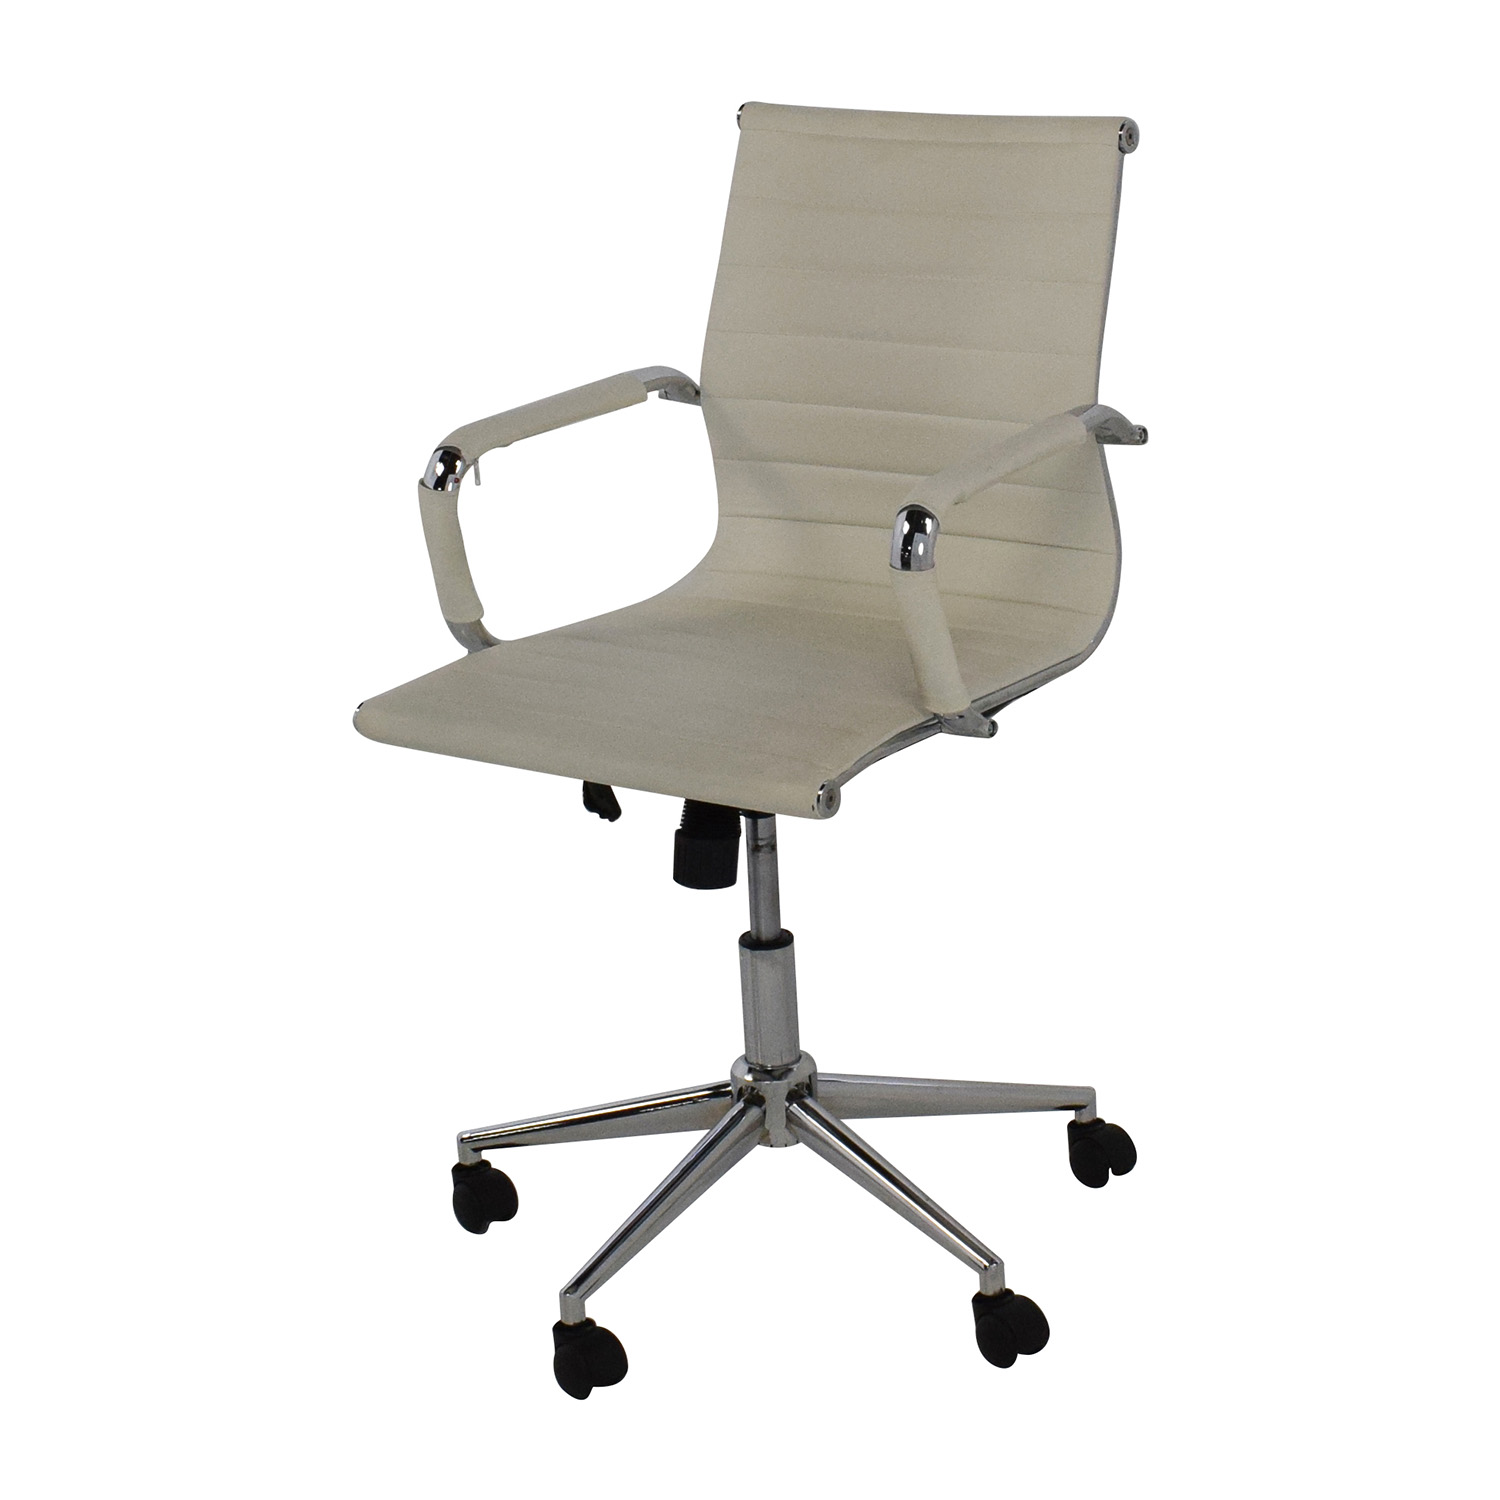 modern white desk chair outdoor cushions at lowes 32 off 2xhome mid back faux leather